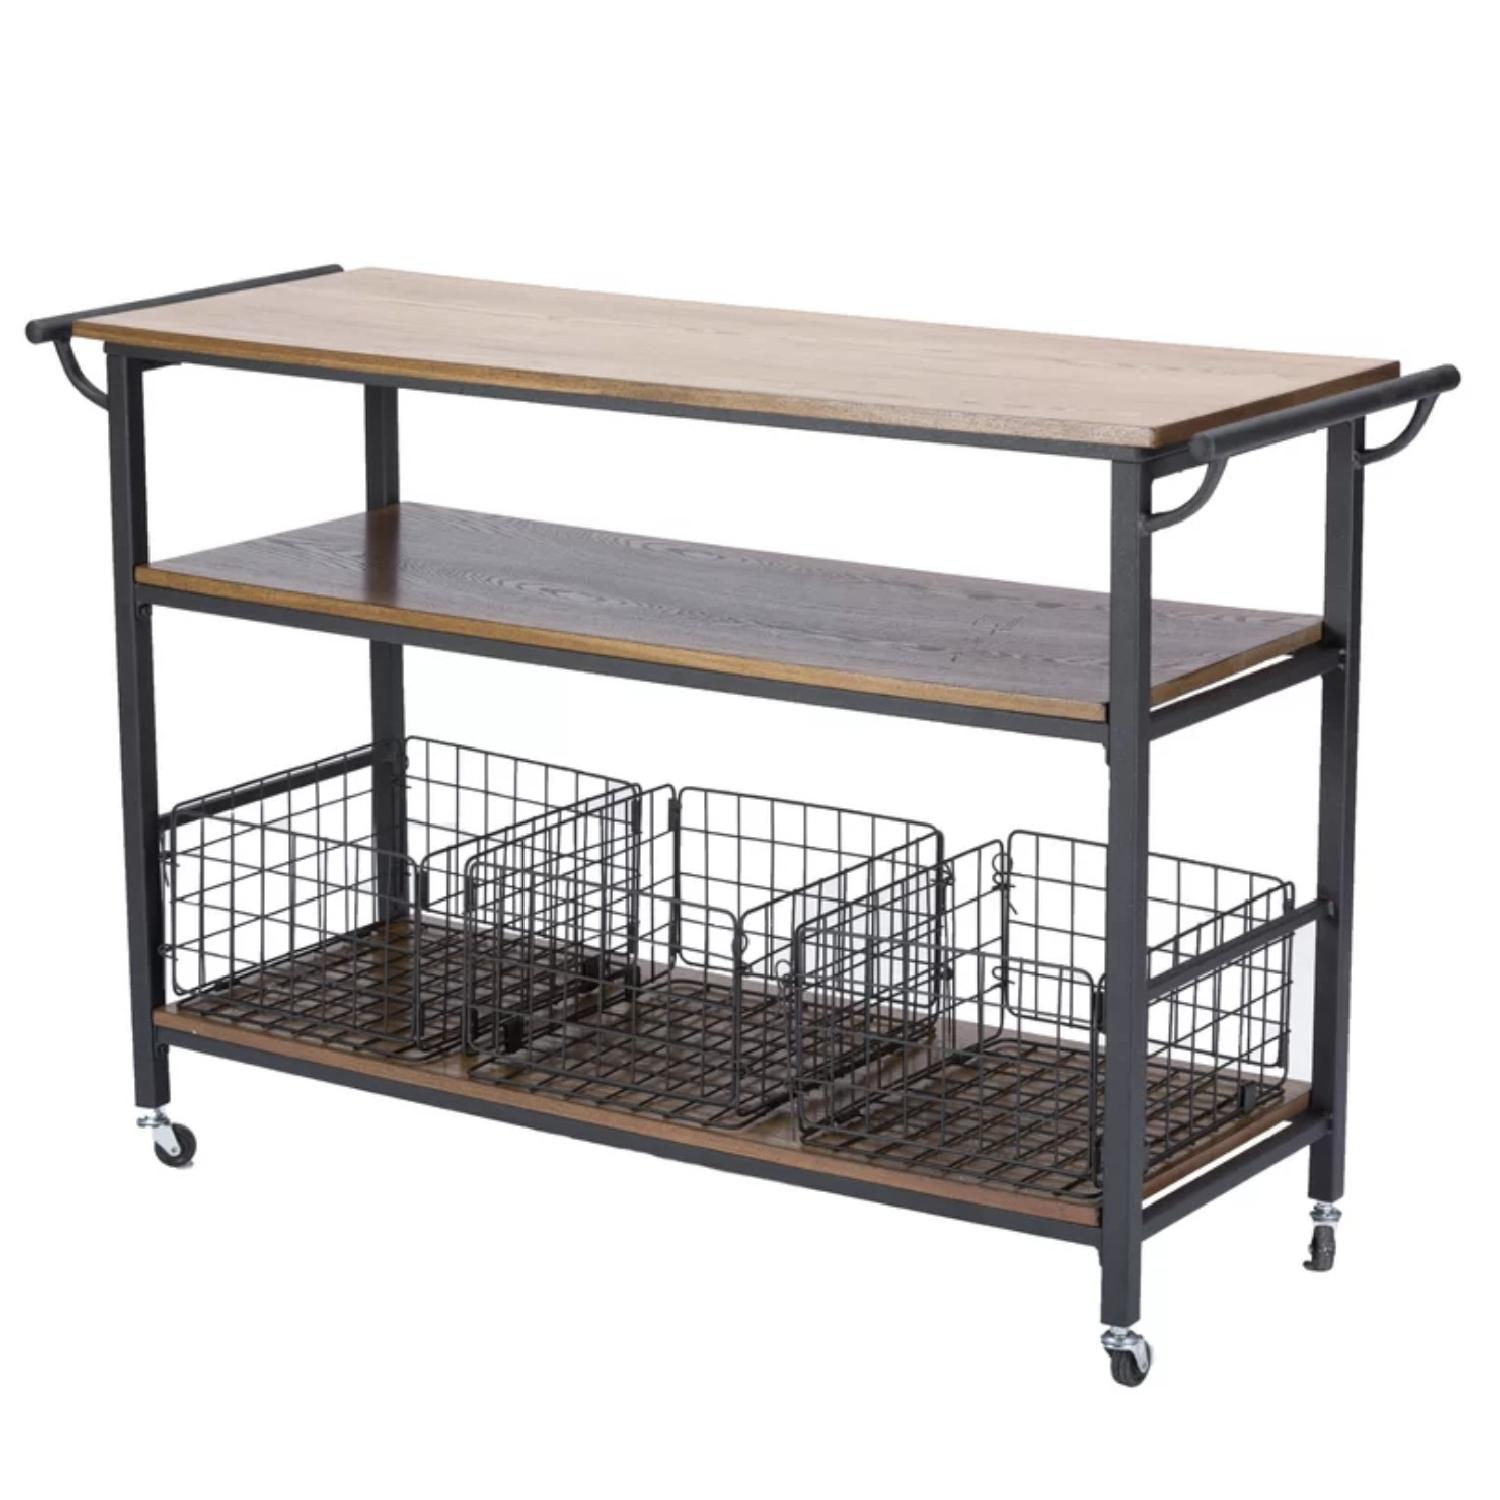 Laurel Foundry Fresnay Kitchen Island w/ Wooden Top